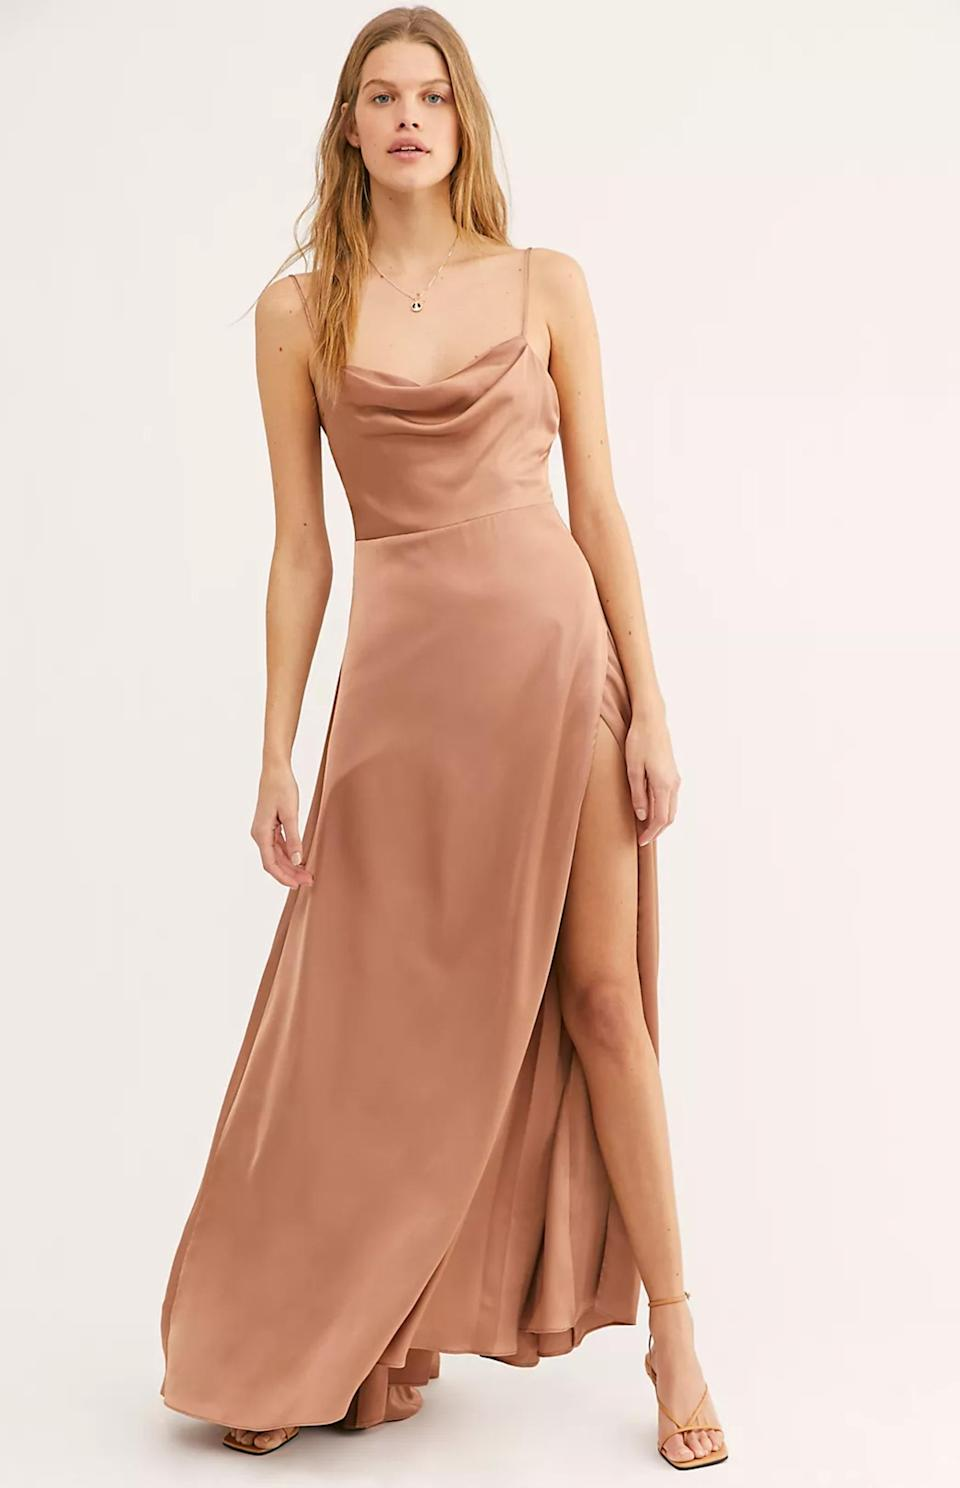 """You can definitely rewear this Free People gem to another summer wedding or black-tie event. $279, Free People. <a href=""""https://www.freepeople.com/shop/the-rosabel-maxi-dress"""" rel=""""nofollow noopener"""" target=""""_blank"""" data-ylk=""""slk:Get it now!"""" class=""""link rapid-noclick-resp"""">Get it now!</a>"""